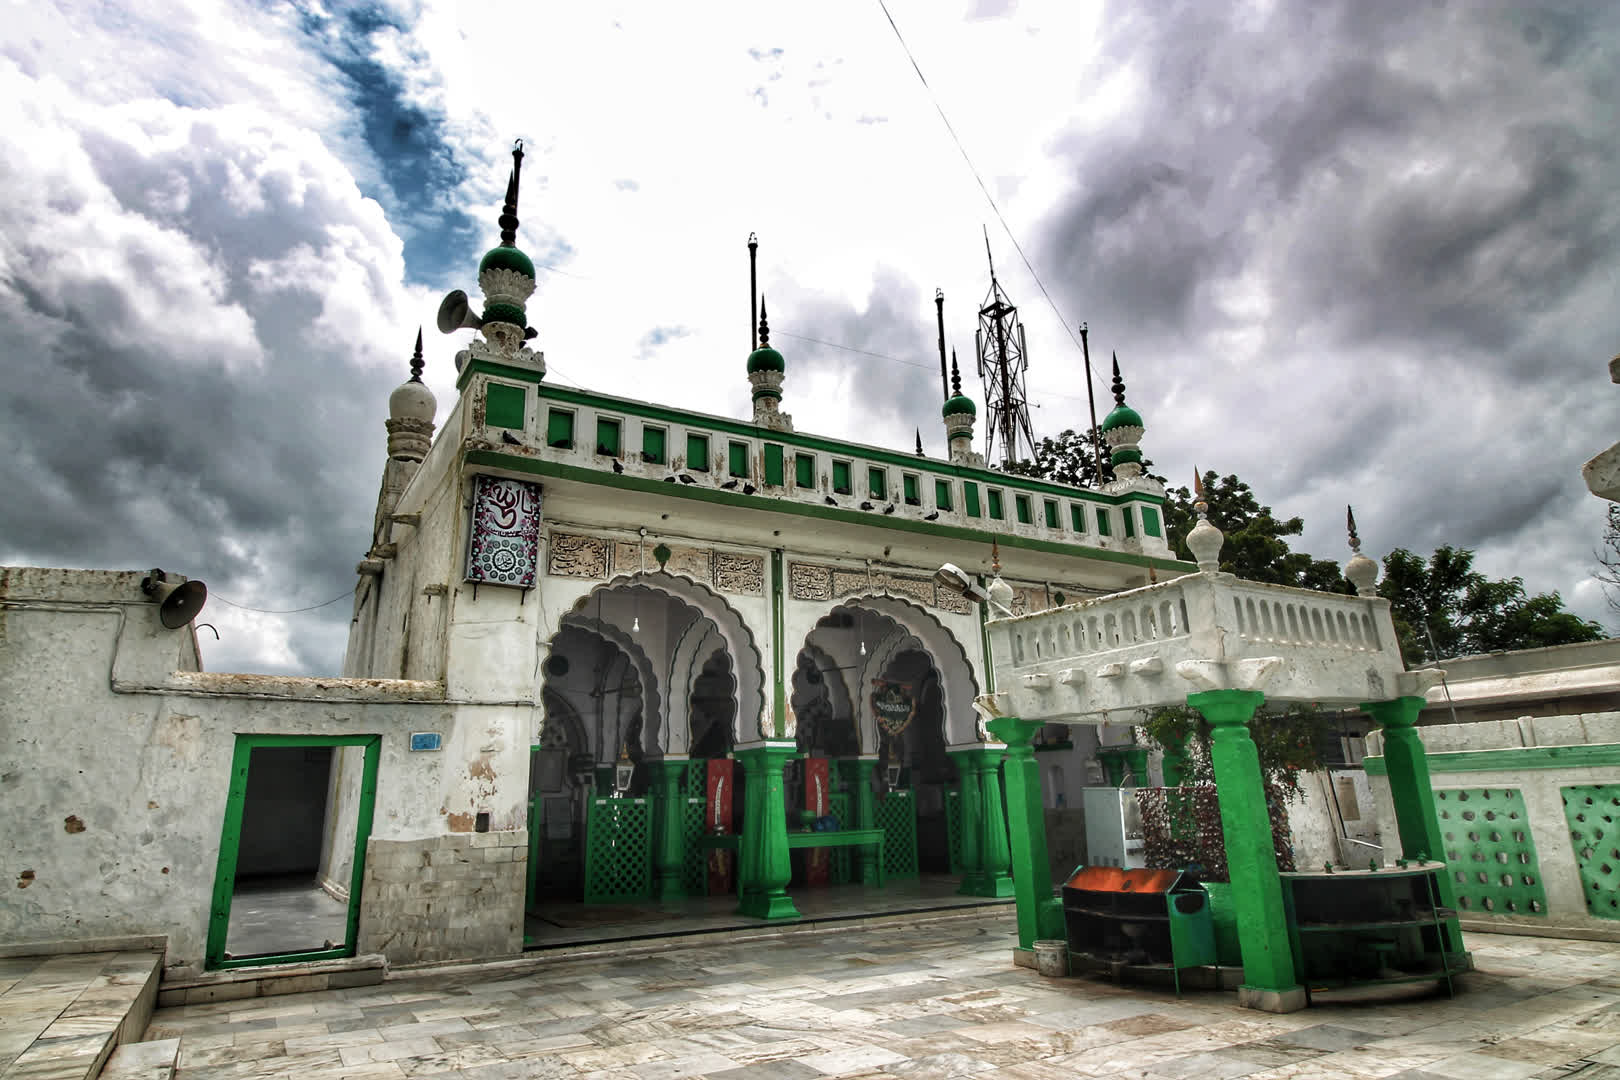 The dargah, perched on top of the hill